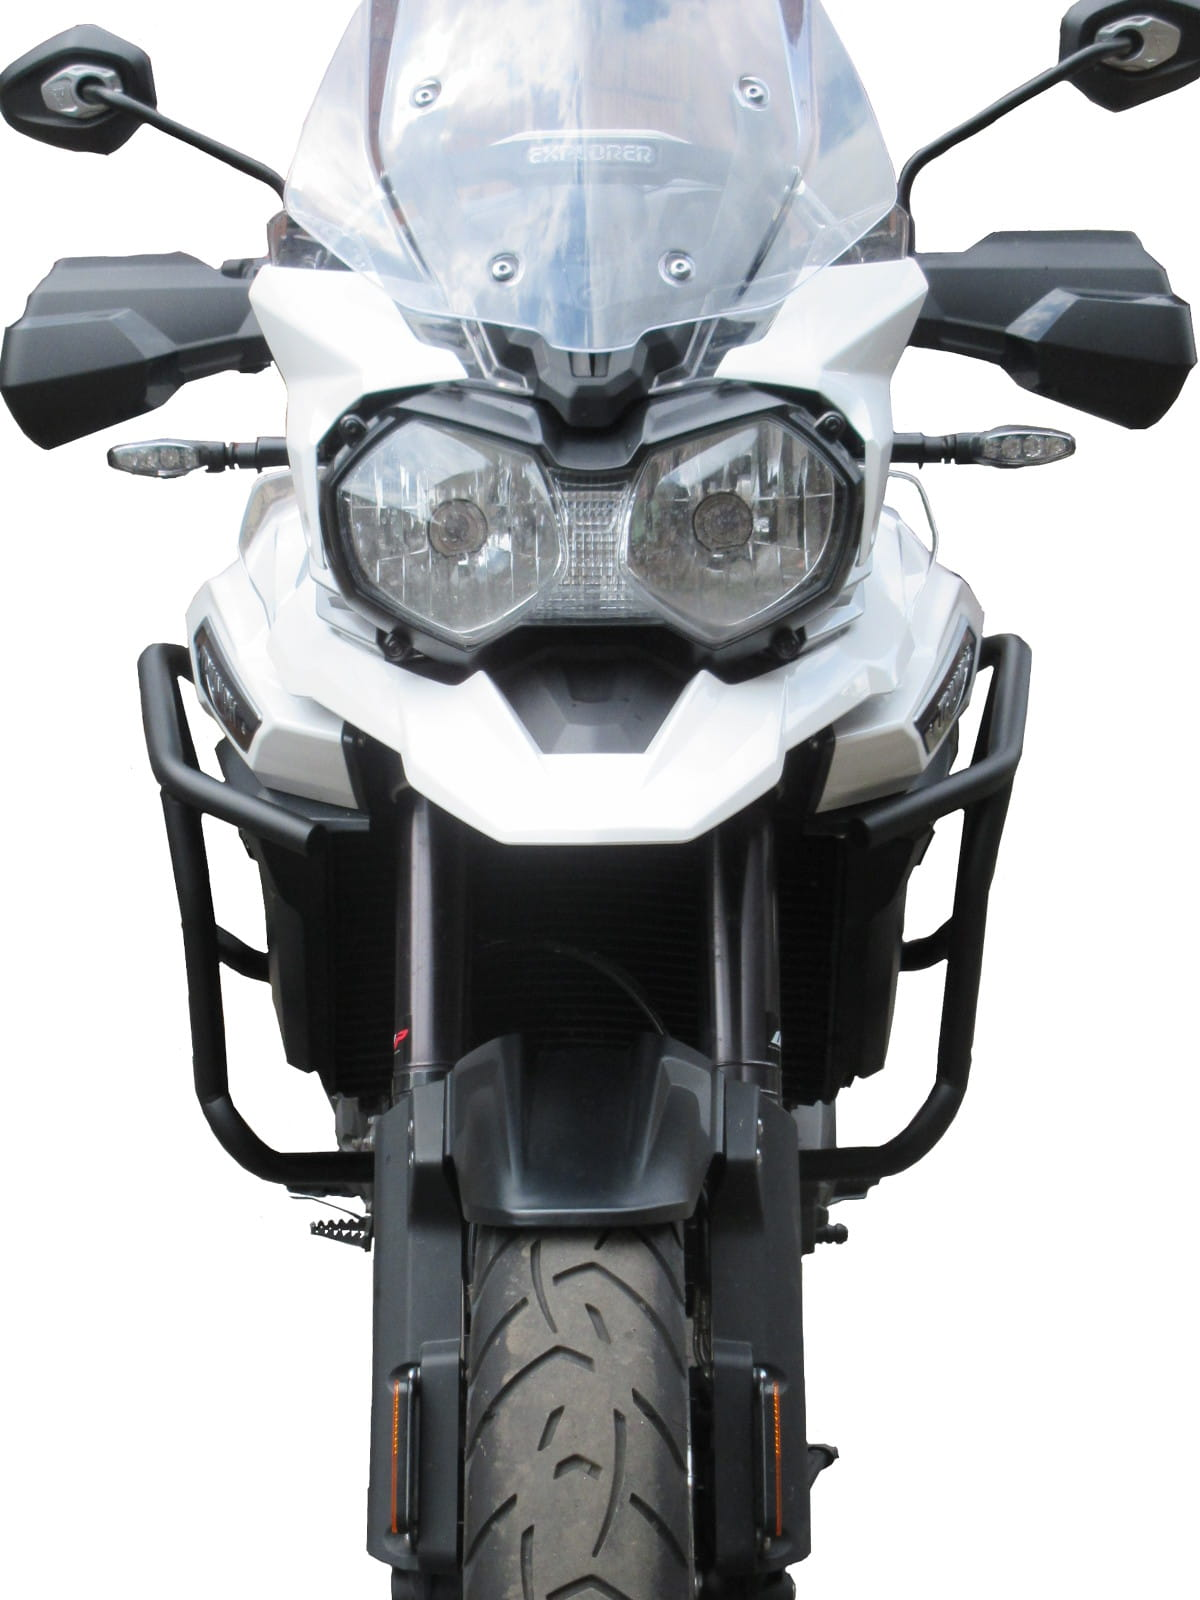 Upper 2016-2017 HEED crash bars Tiger Explorer 1200//1200 XC